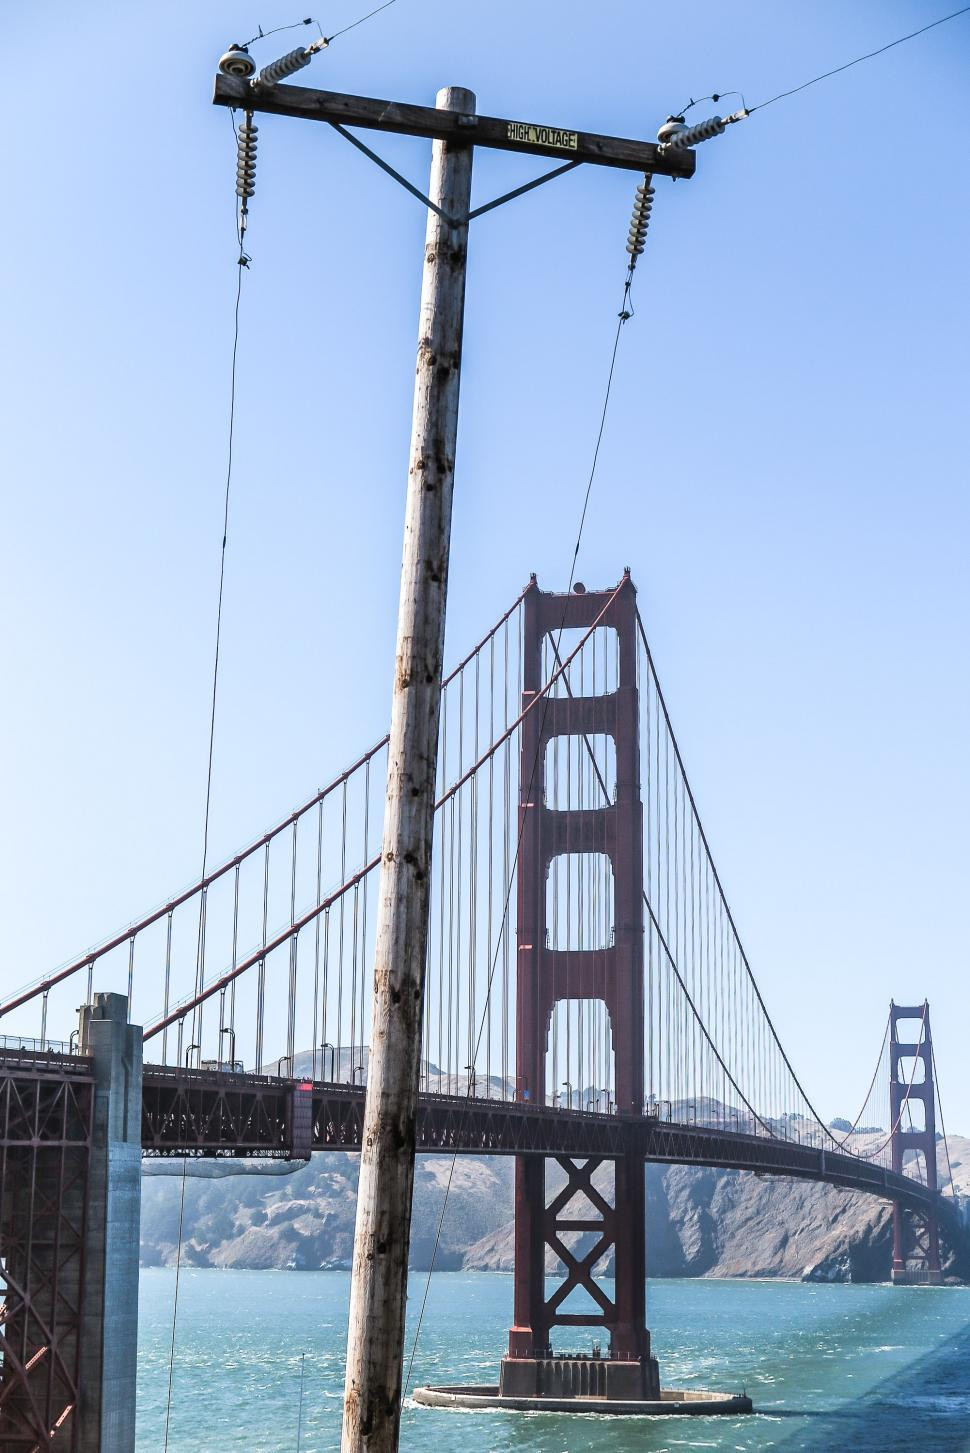 Download Free Stock HD Photo of Golden Gate bridge obscured by Telephone Pole Online